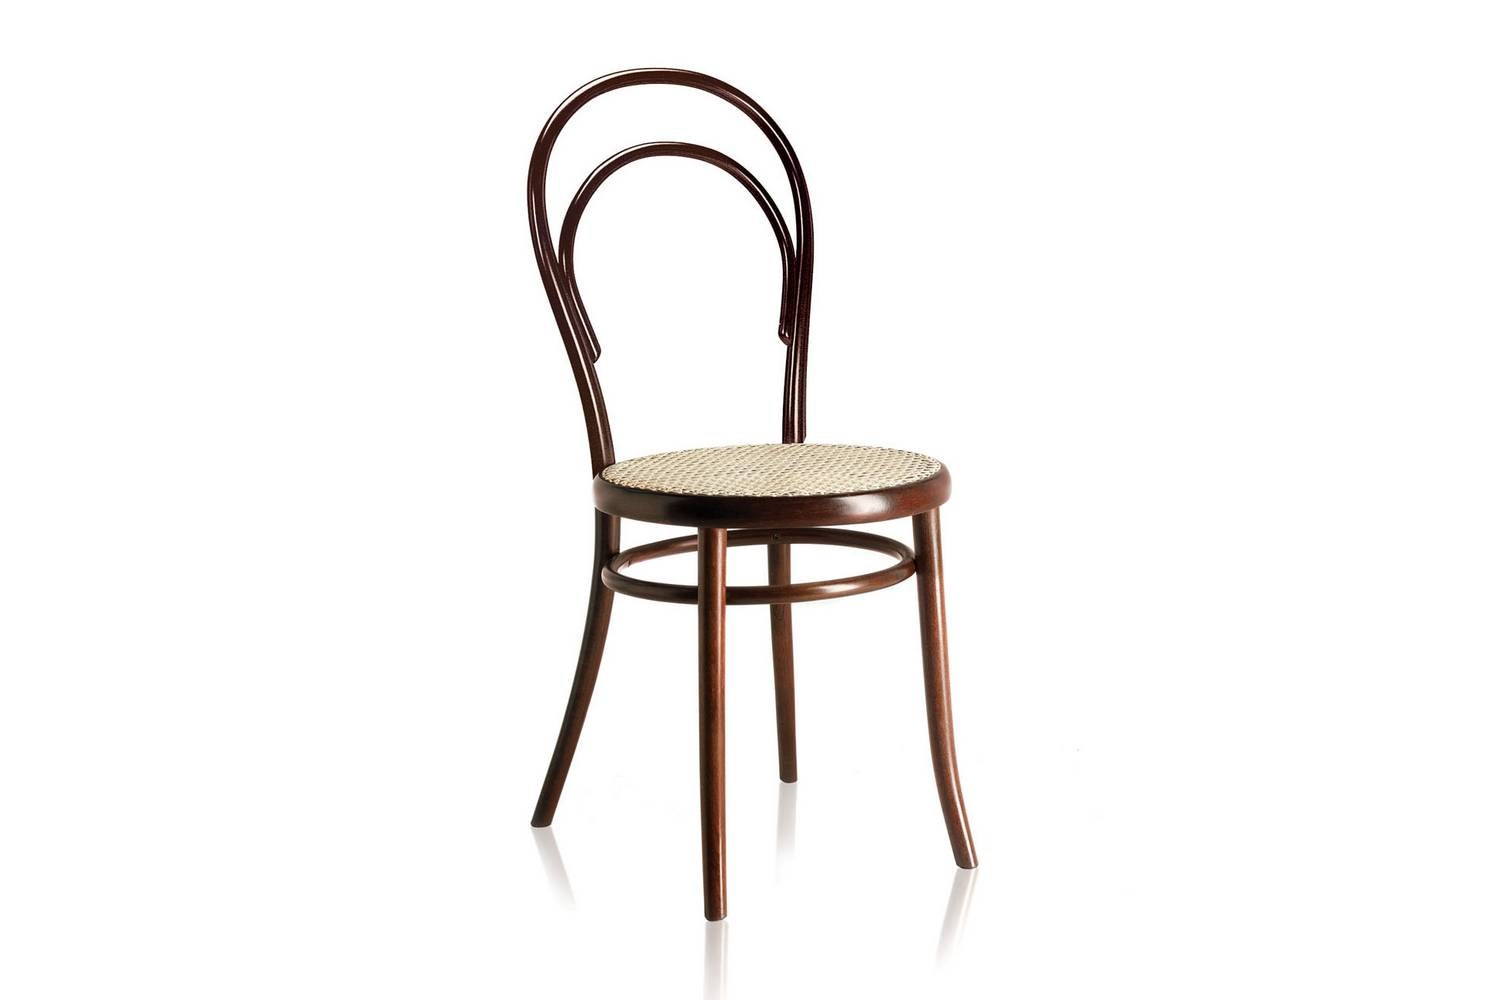 Etonnant N. 14 Chair By Michael Thonet For Wiener GTV Design